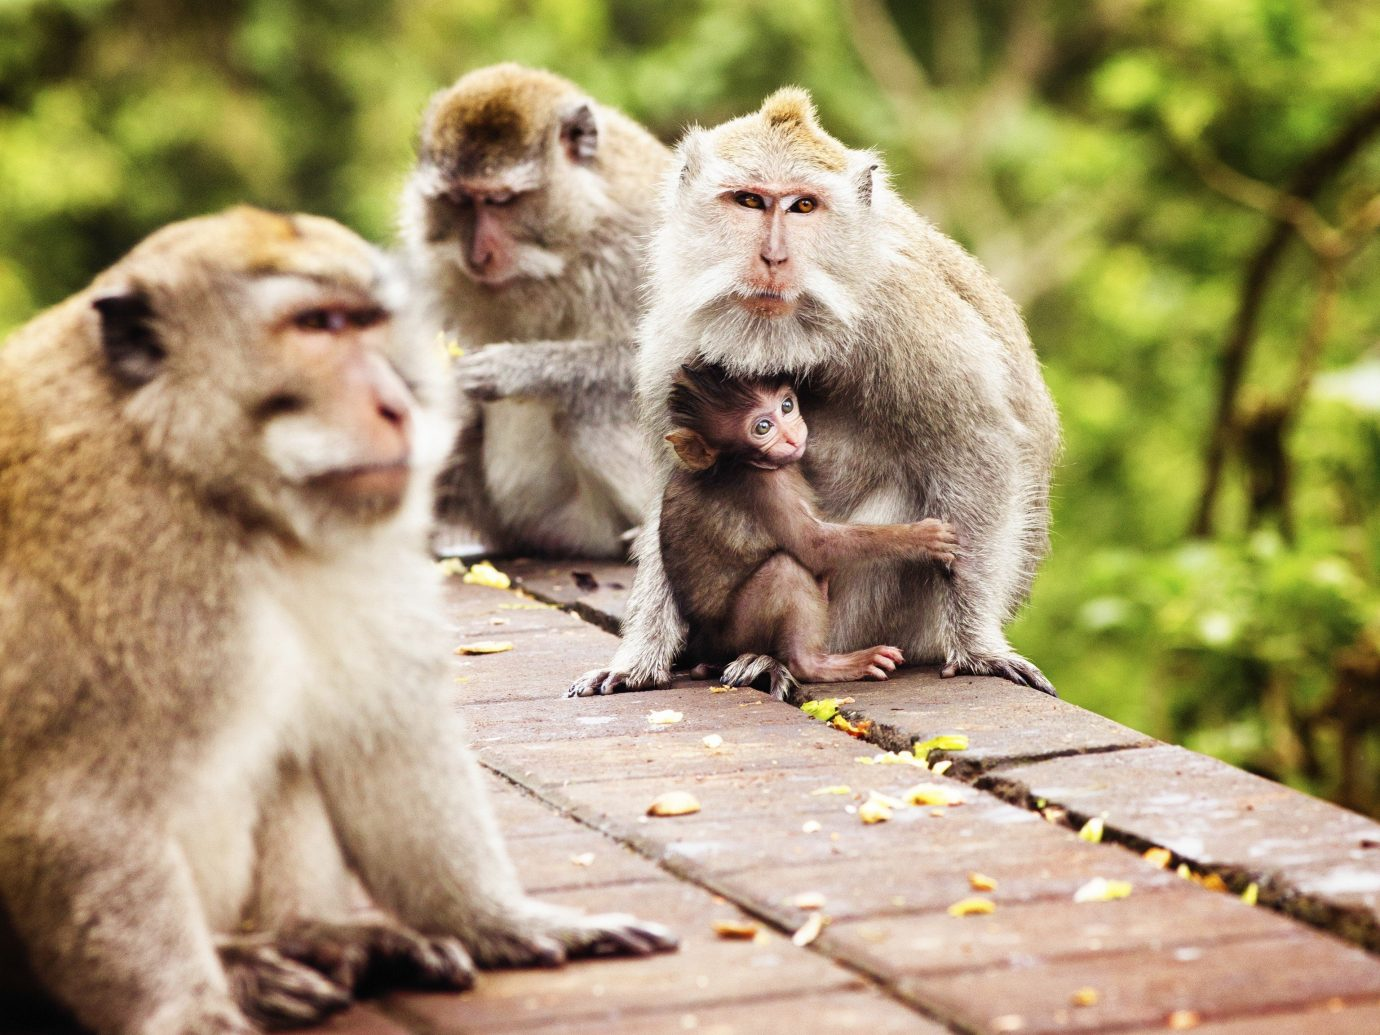 Travel Tips primate ground outdoor mammal monkey tree animal macaque vertebrate fauna old world monkey Wildlife